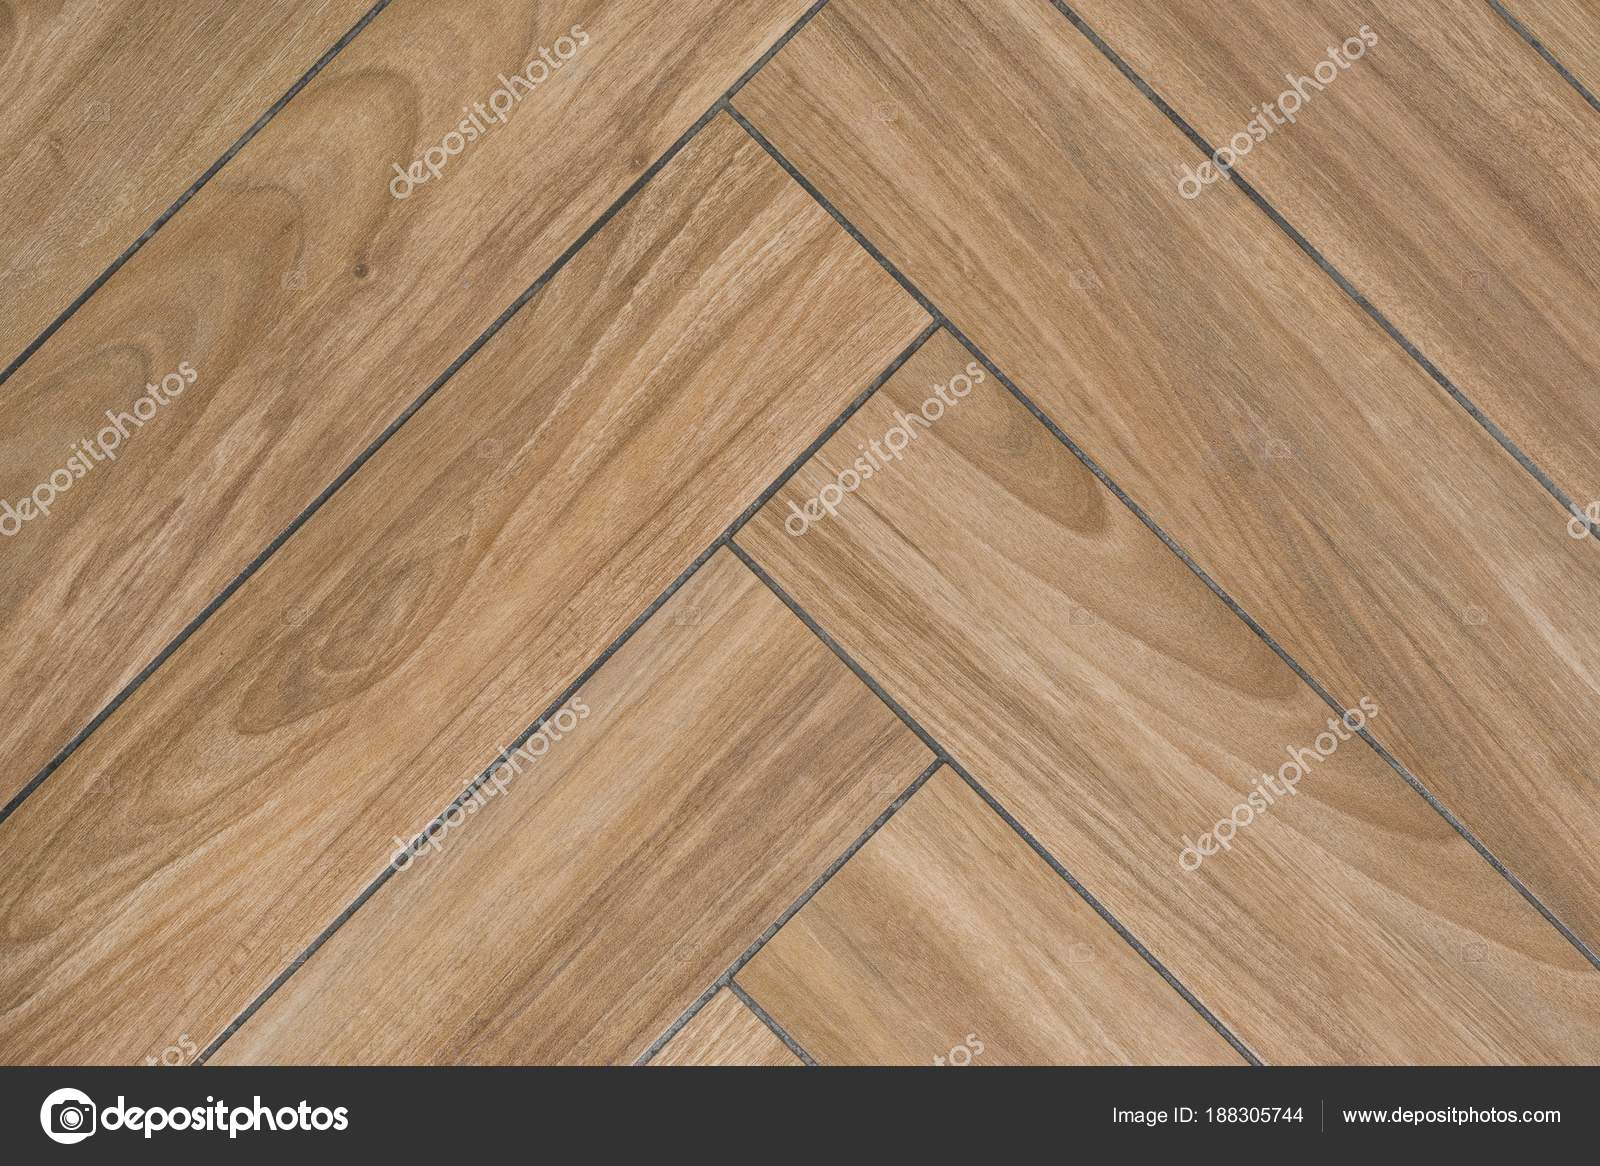 Oak Wood Texture Of Floor With Tiles Immitating Hardwood Flooring